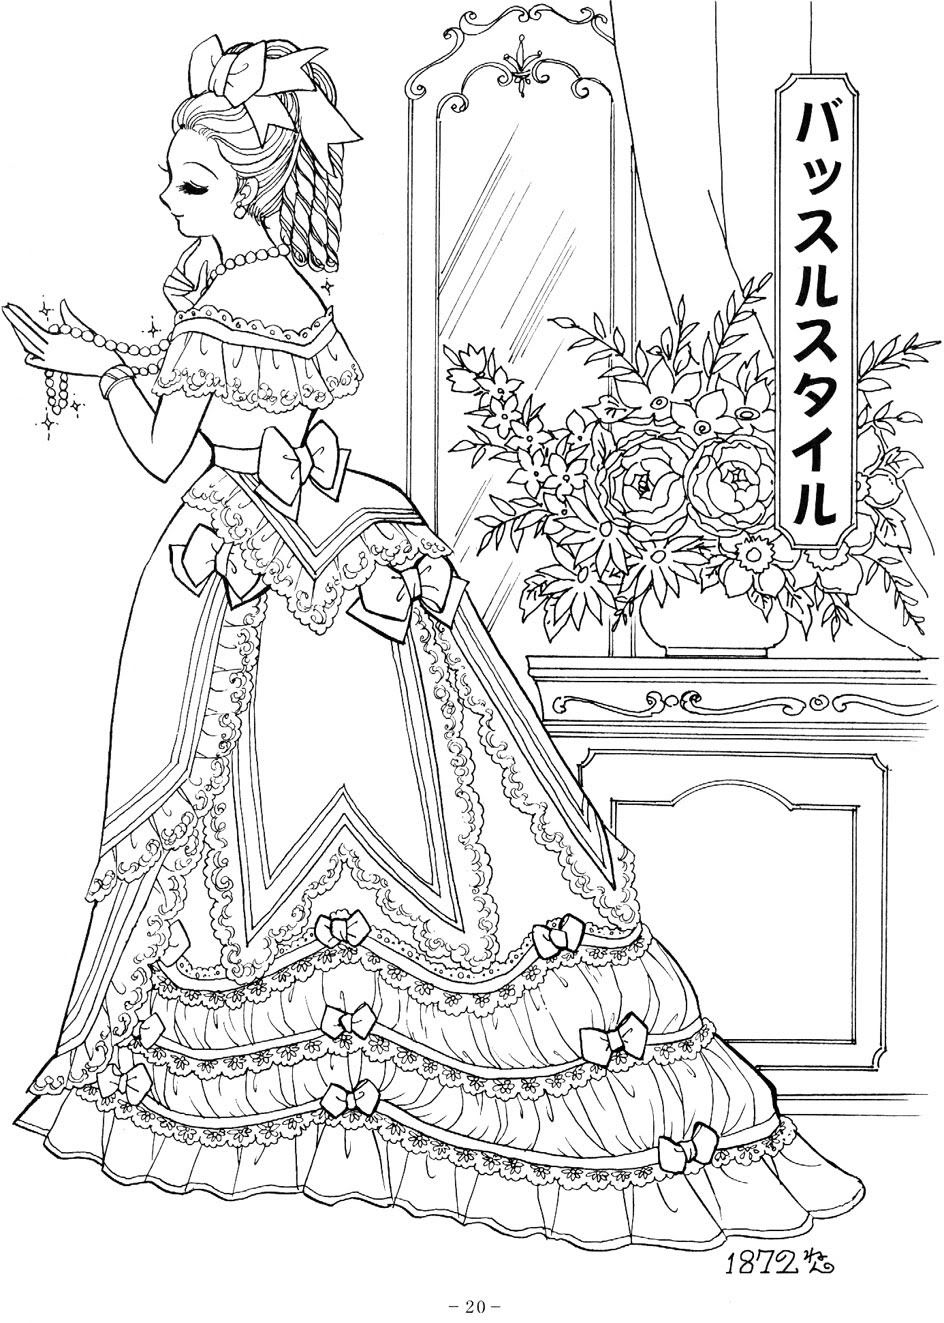 Princess world coloring pages - 1872 Dress Coloring Page Princess World Coloring Book